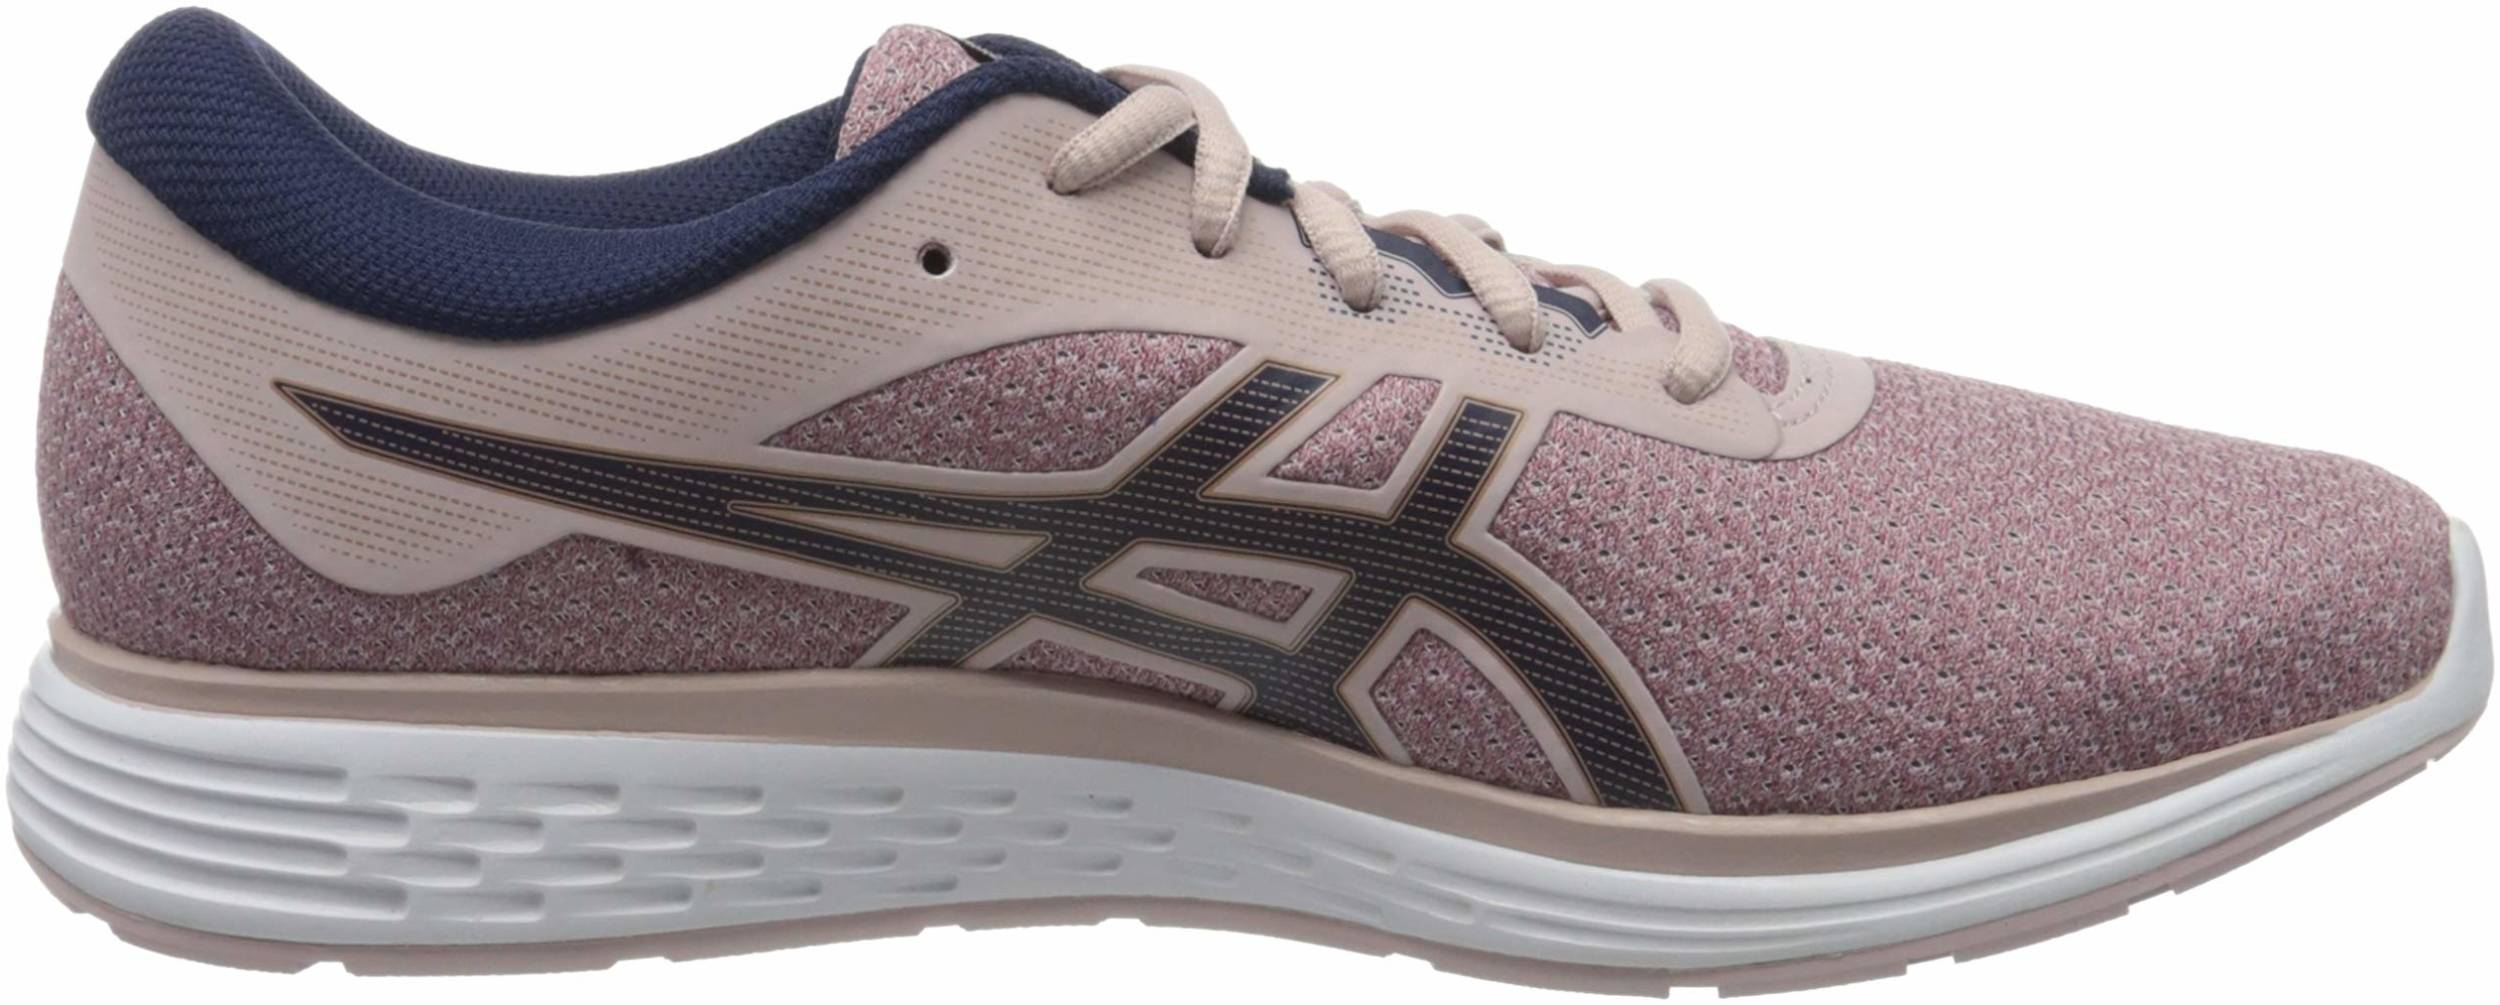 Asics Patriot 11 Twist